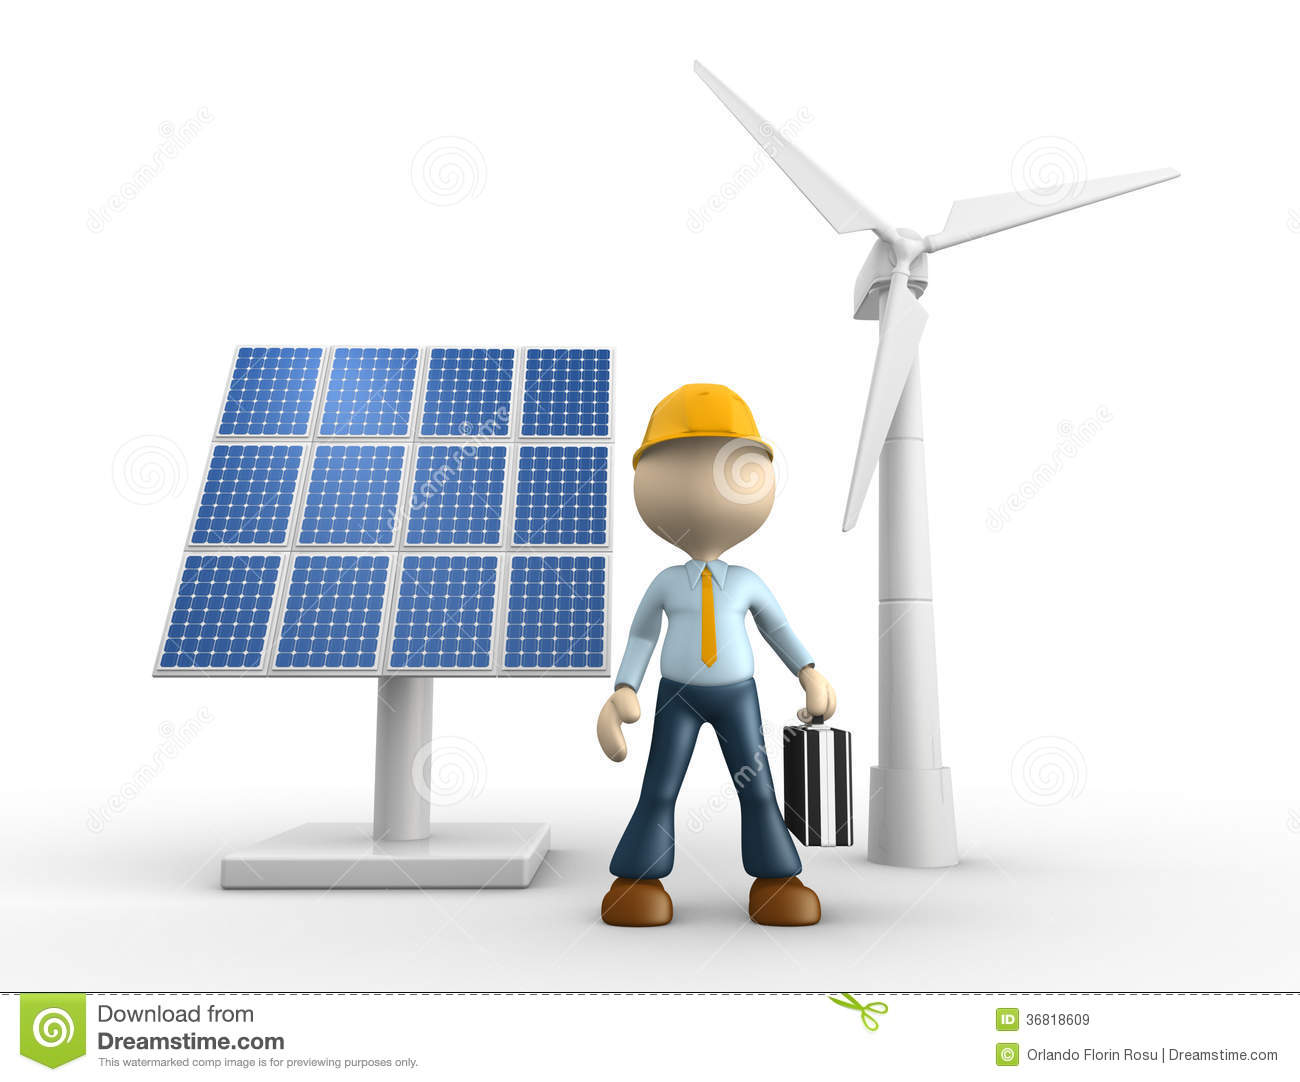 ... people-man-person-solar-panels-wind-turbines-wind-power-36818609.jpg